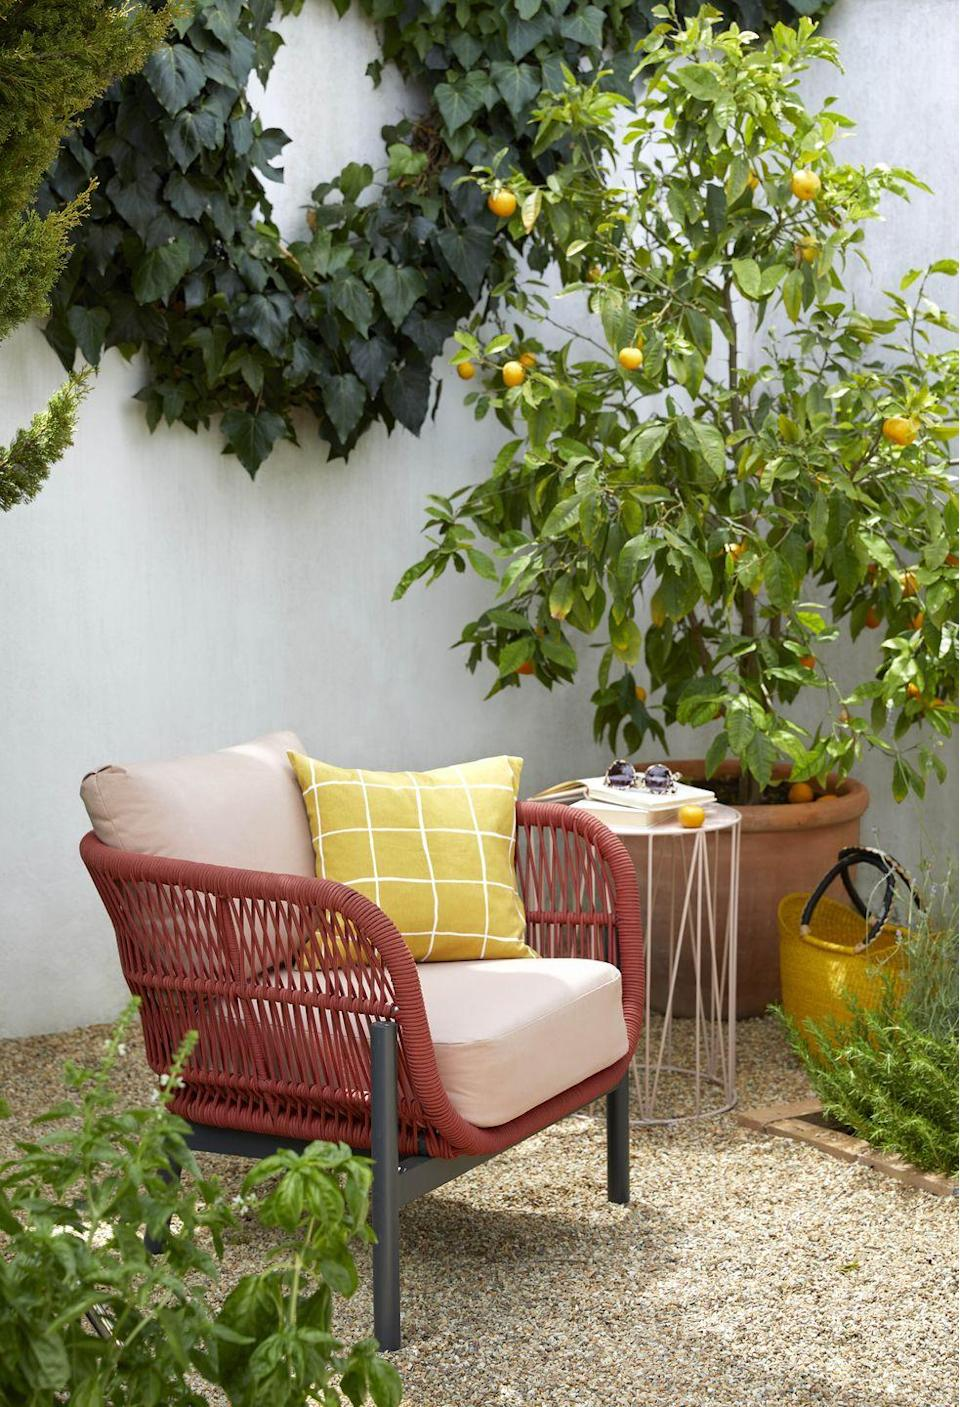 """<p>Complete your outdoor space with weatherproof <a href=""""https://www.housebeautiful.com/uk/garden/g32139876/outdoor-cushions/"""" rel=""""nofollow noopener"""" target=""""_blank"""" data-ylk=""""slk:garden cushions"""" class=""""link rapid-noclick-resp"""">garden cushions</a>. 'As well as bringing much needed comfort to your garden seating, the addition of outdoor cushions allows you to blur the lines between interior and exterior, helping to create a space that is often left unused through half the year, feel like a carefully considered living area,' says Martin Waller, founder of <a href=""""https://www.andrewmartin.co.uk/"""" rel=""""nofollow noopener"""" target=""""_blank"""" data-ylk=""""slk:Andrew Martin"""" class=""""link rapid-noclick-resp"""">Andrew Martin</a>.</p><p>Shop the full look at John Lewis</p><p><a class=""""link rapid-noclick-resp"""" href=""""https://www.housebeautiful.com/uk/garden/g32139876/outdoor-cushions/"""" rel=""""nofollow noopener"""" target=""""_blank"""" data-ylk=""""slk:READ MORE: THE BEST OUTDOOR CUSHIONS"""">READ MORE: THE BEST OUTDOOR CUSHIONS</a></p>"""